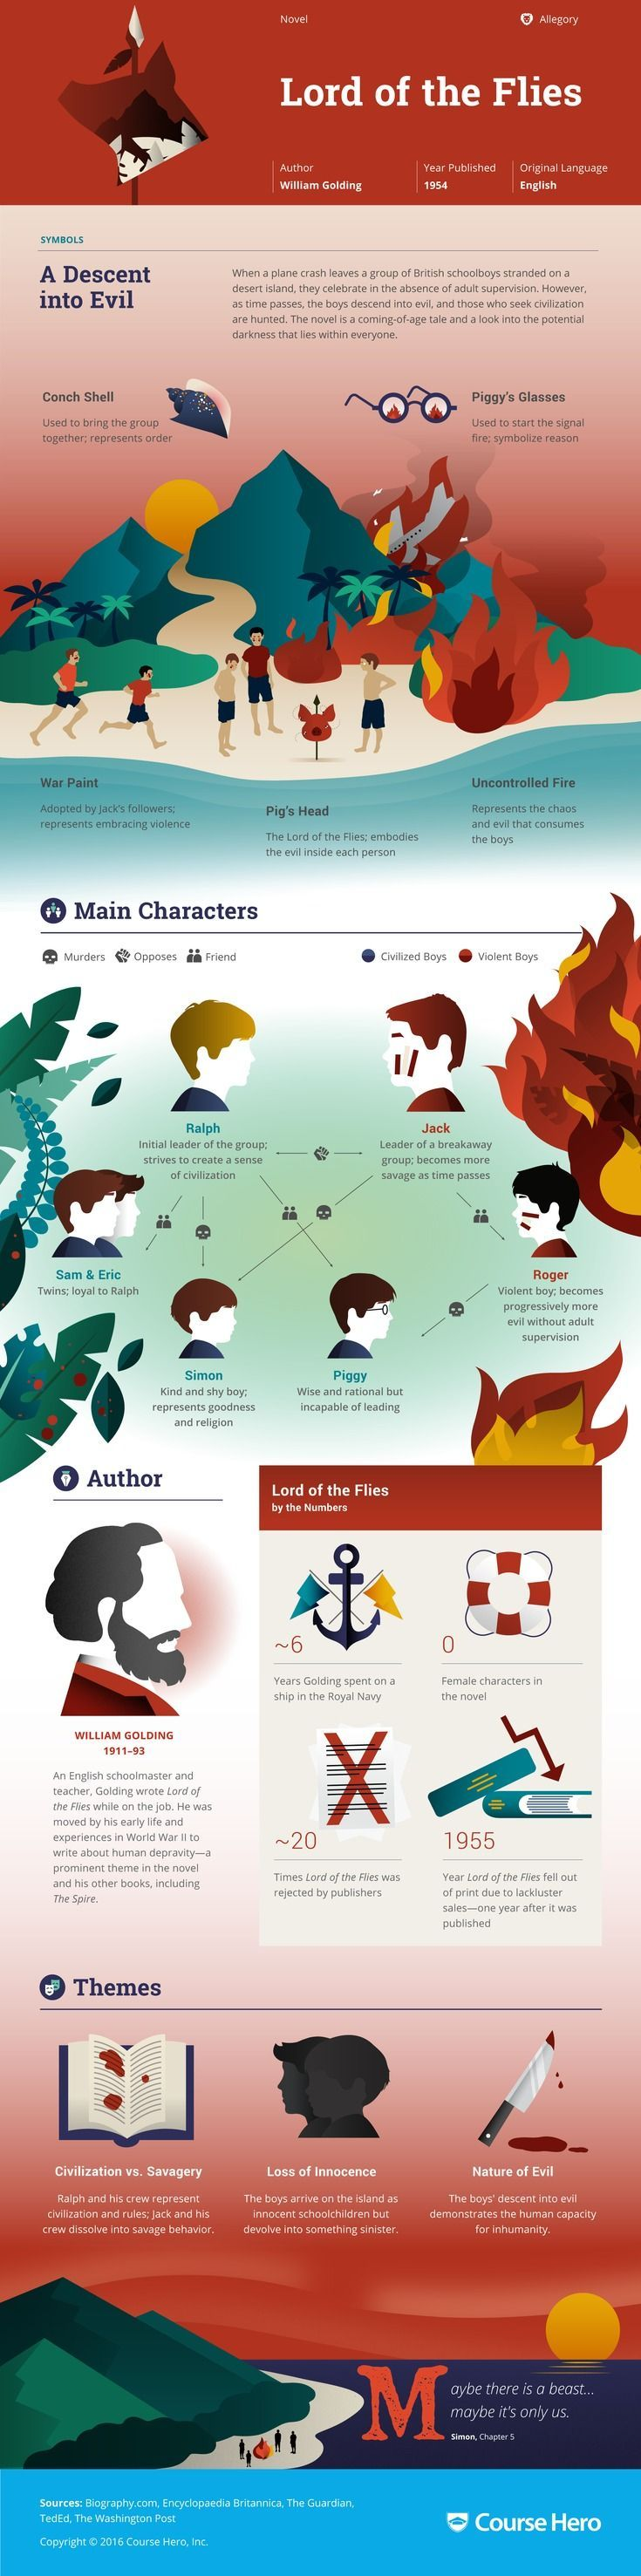 best ideas about night elie wiesel summary music this coursehero infographic on lord of the flies is both visually stunning and informative